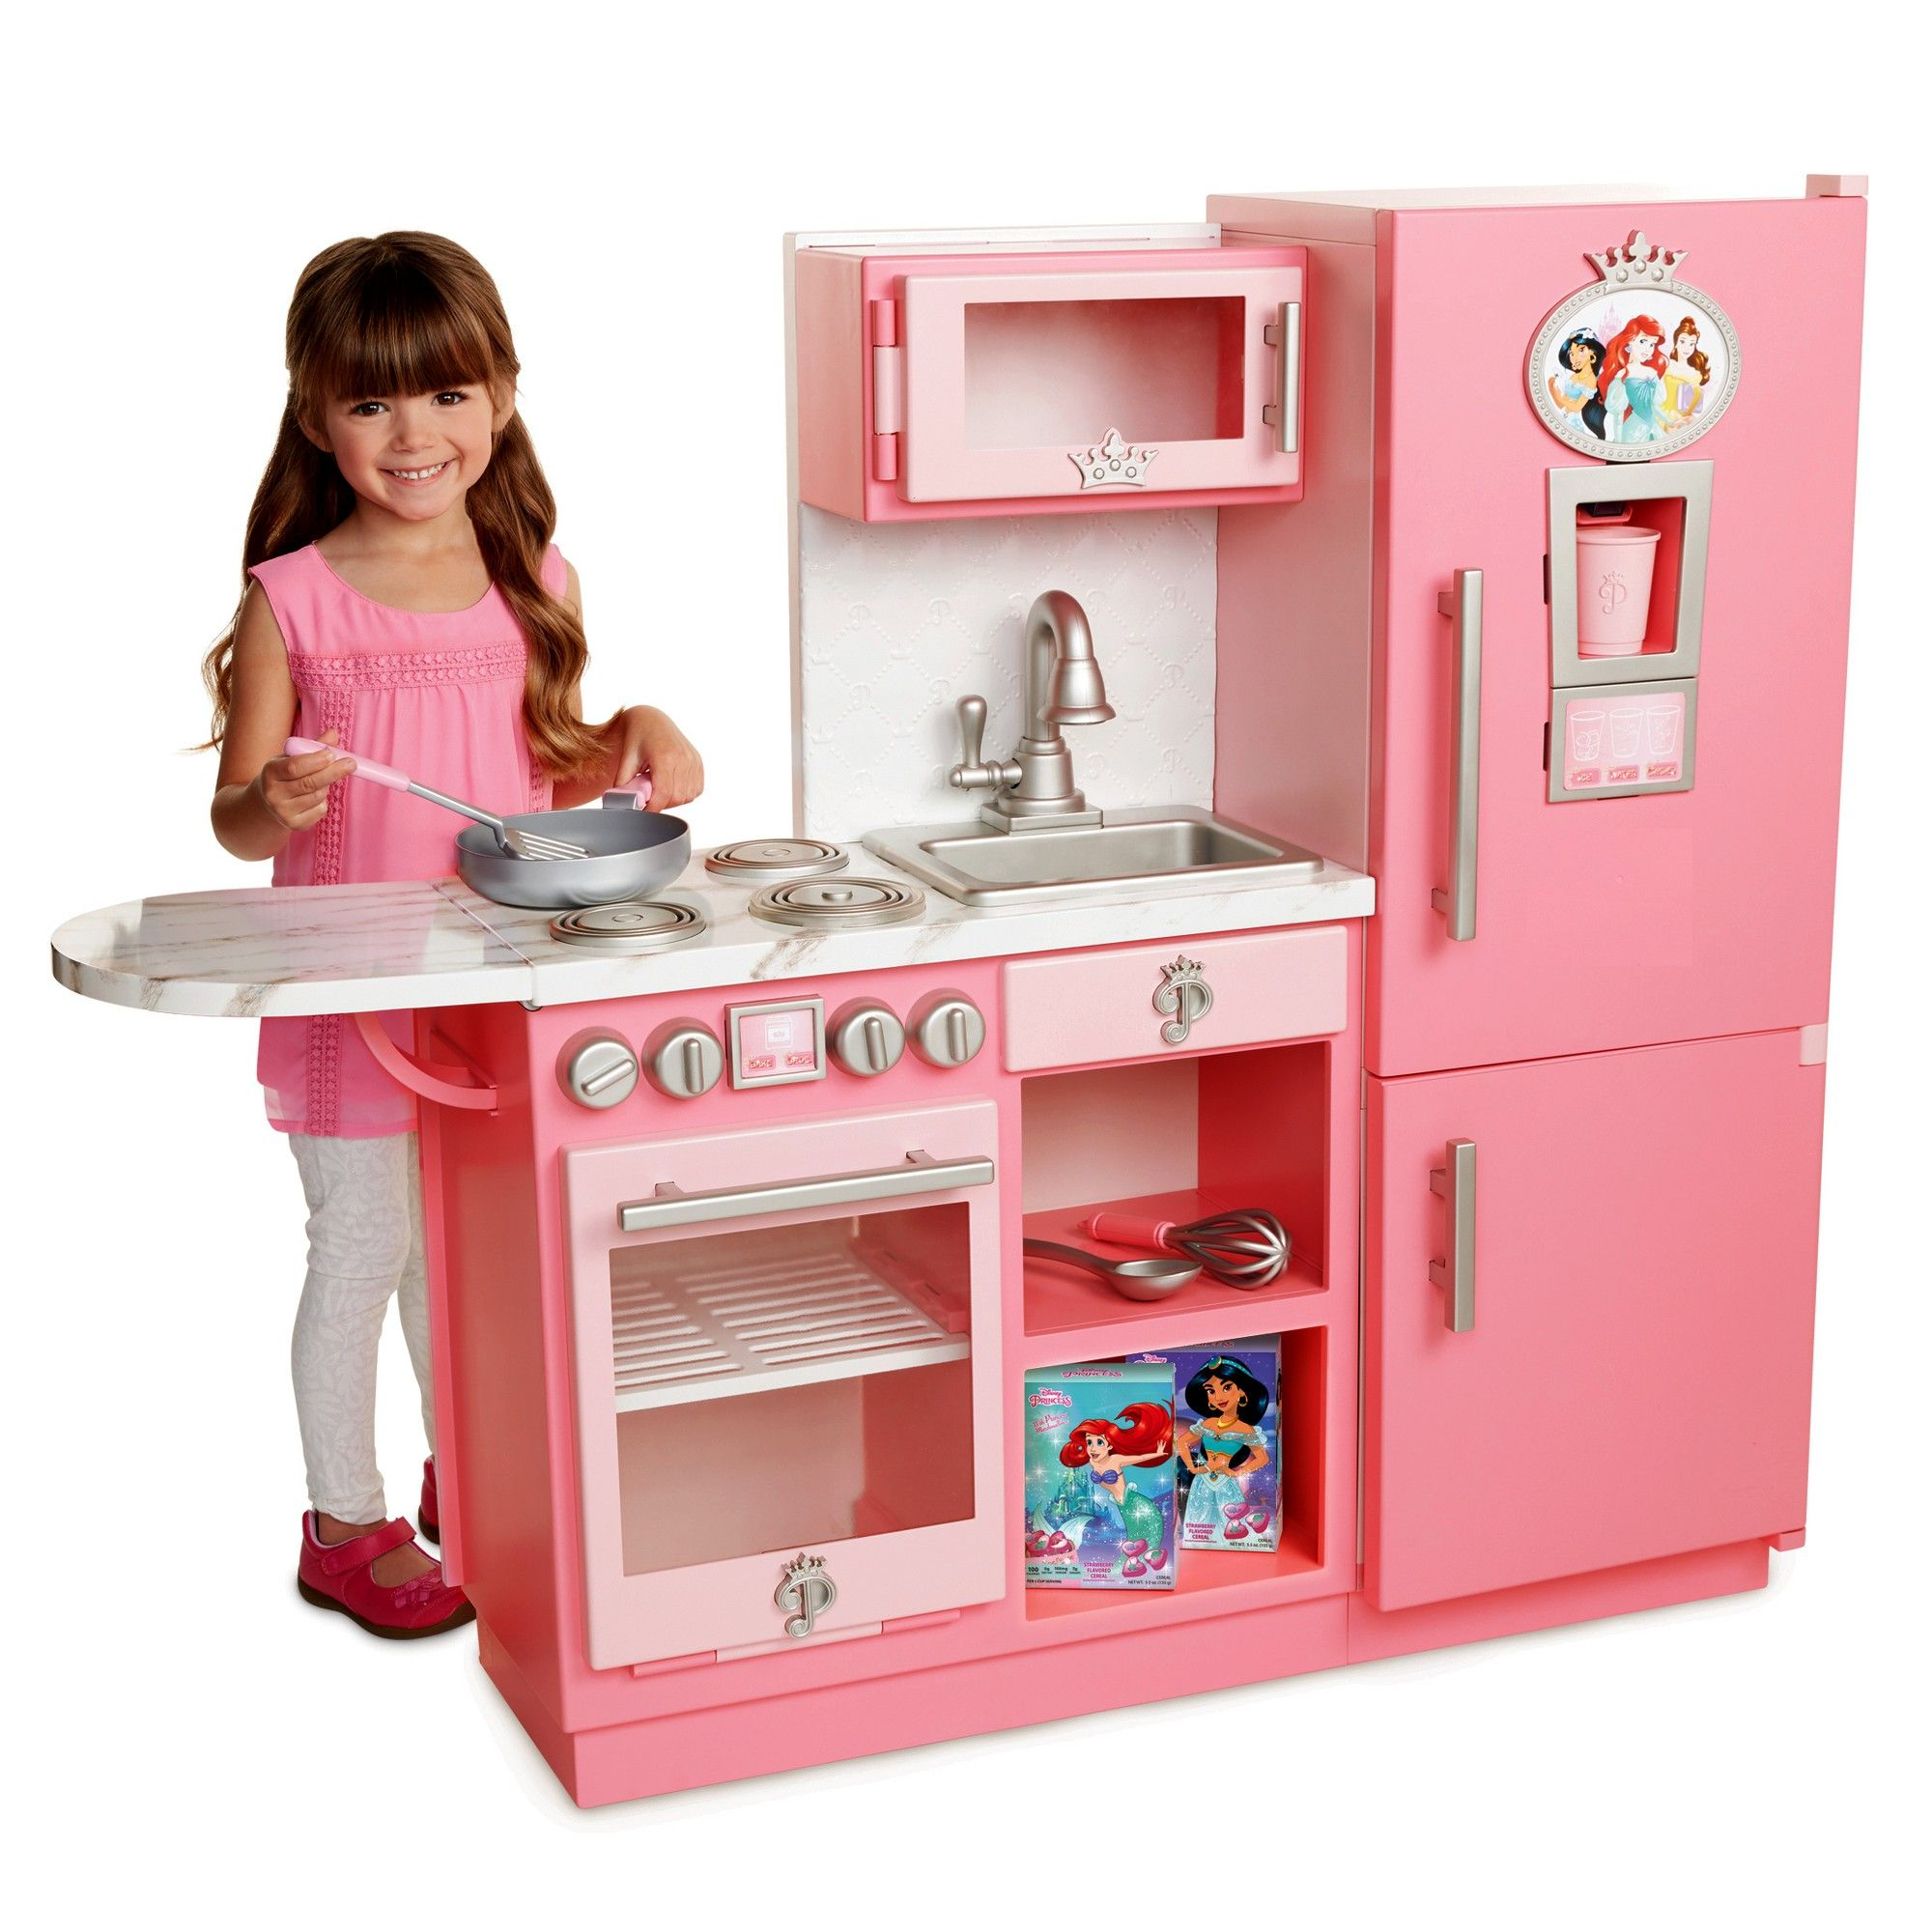 Disney Princess Style Collection Gourmet Kitchen 12pc Princess Kitchen Kitchen Sets For Kids Disney Princess Kitchen